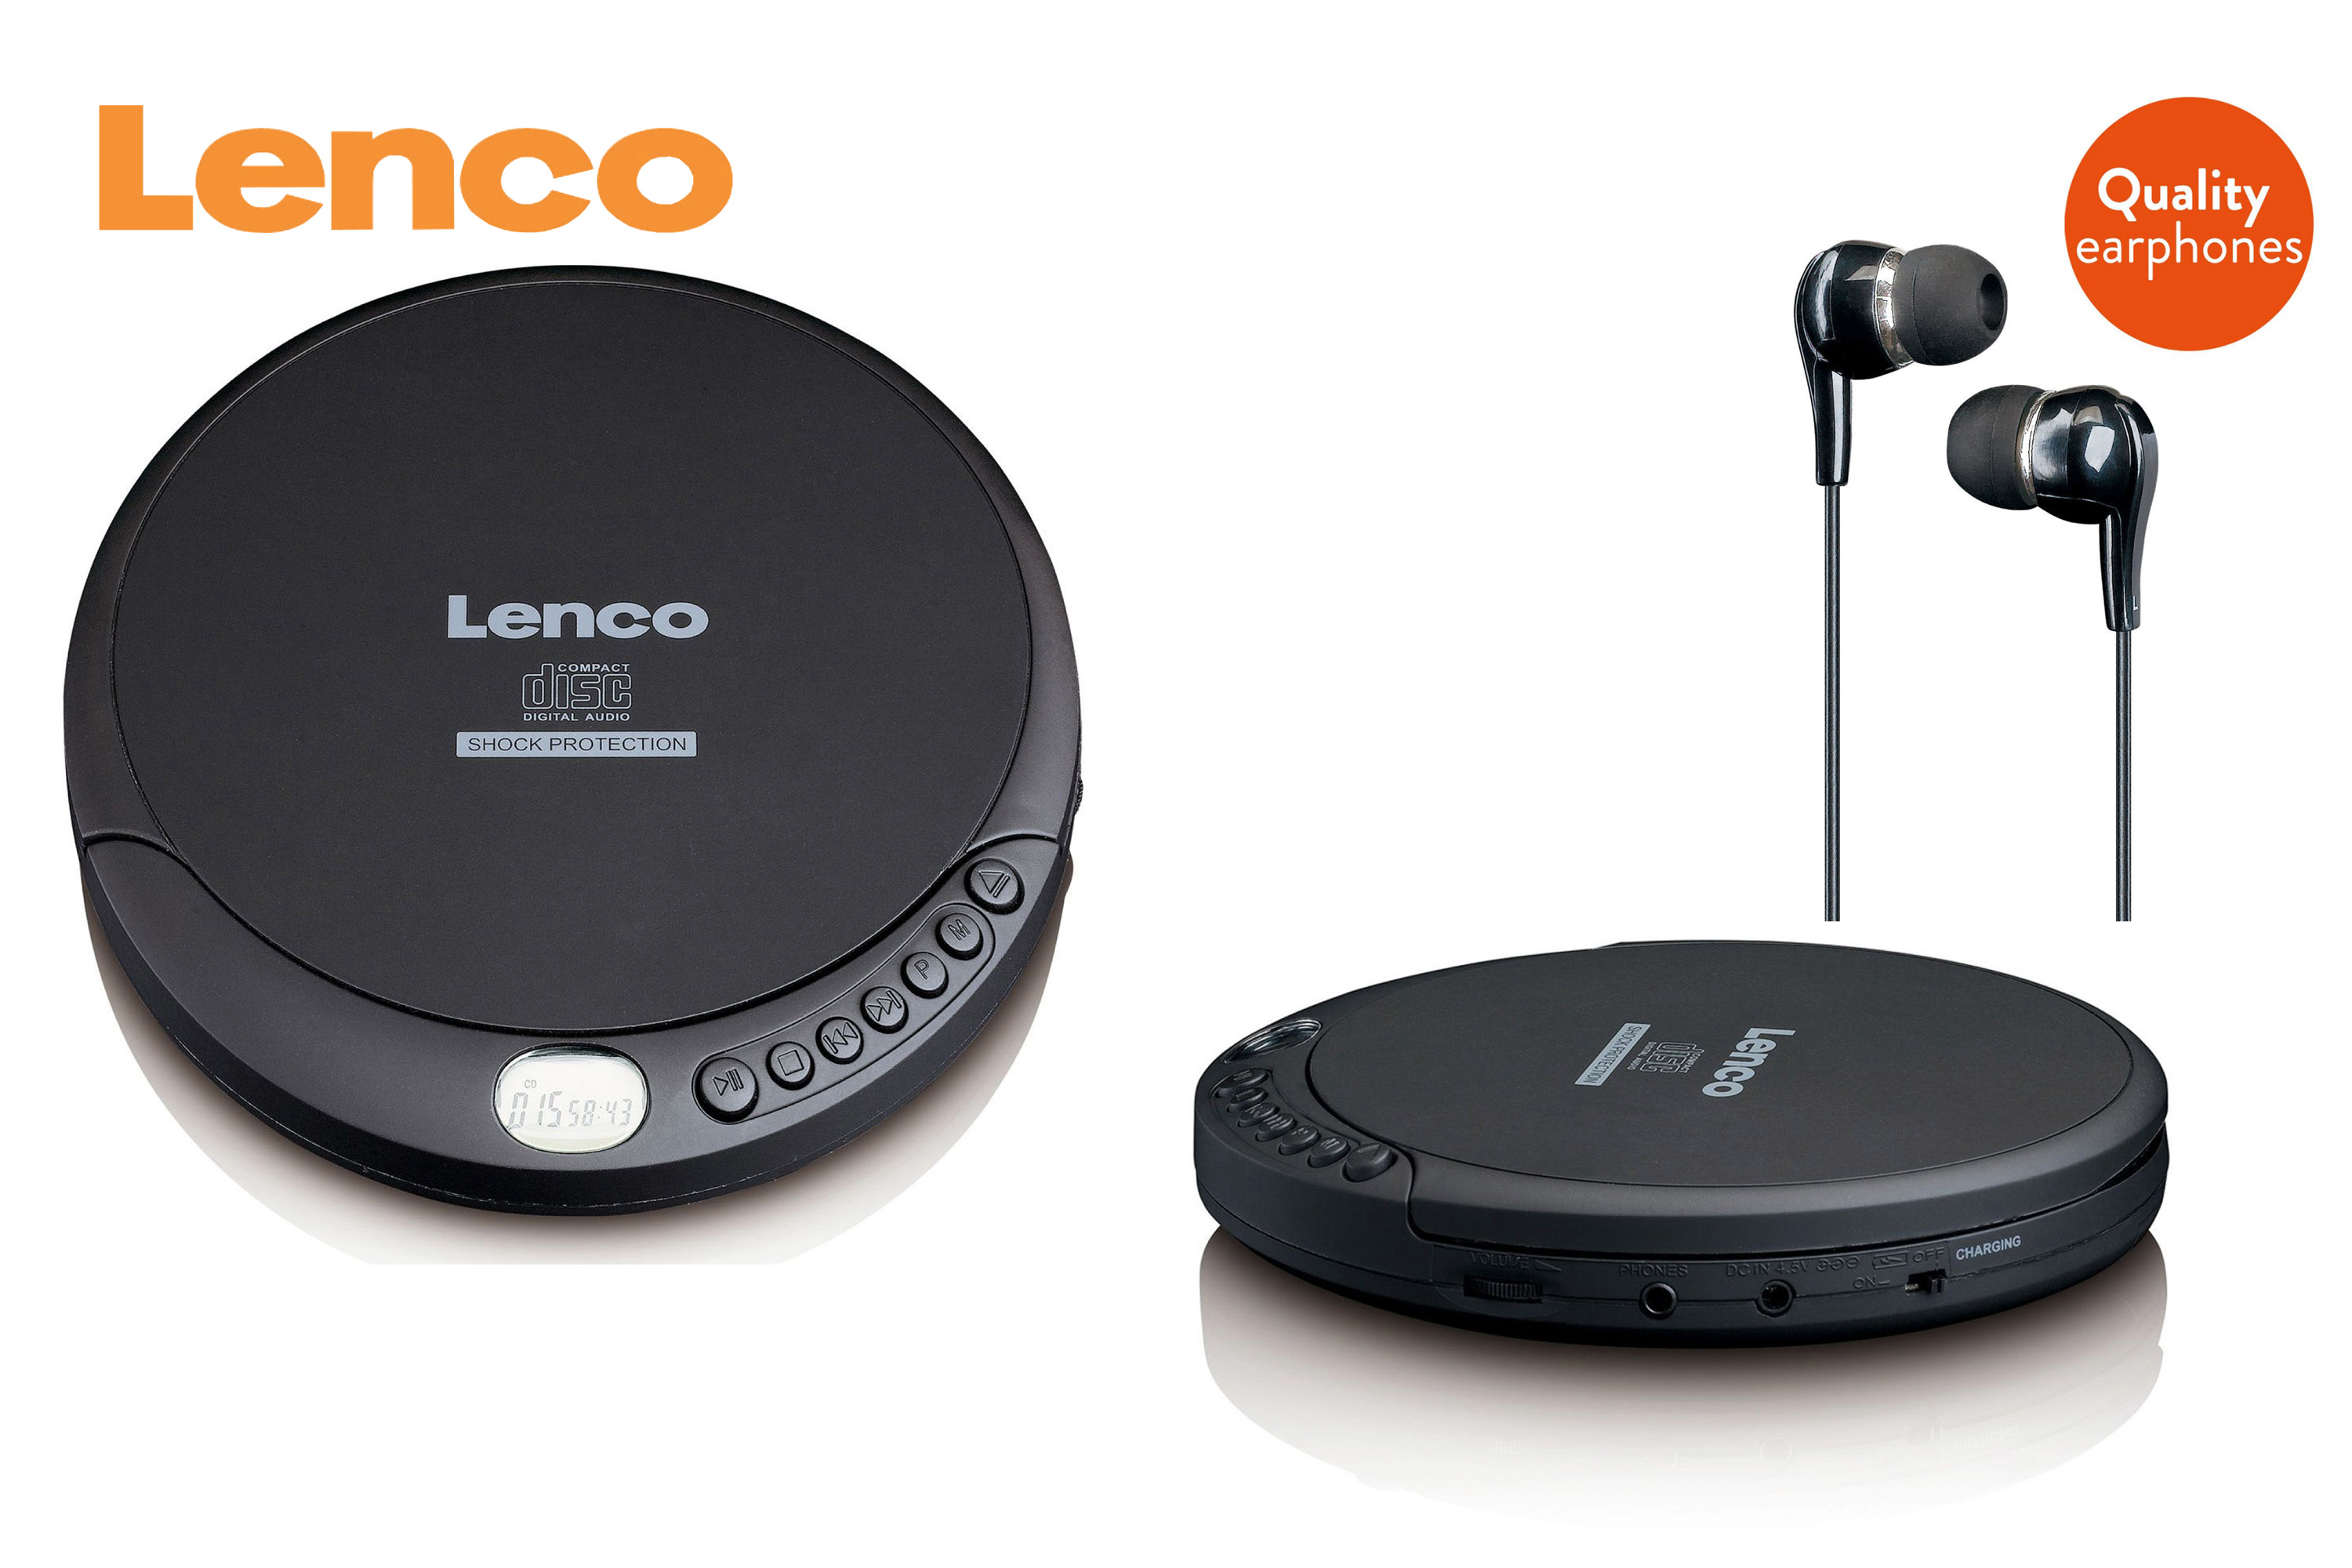 Lenco CD spelare MP3 resume sv